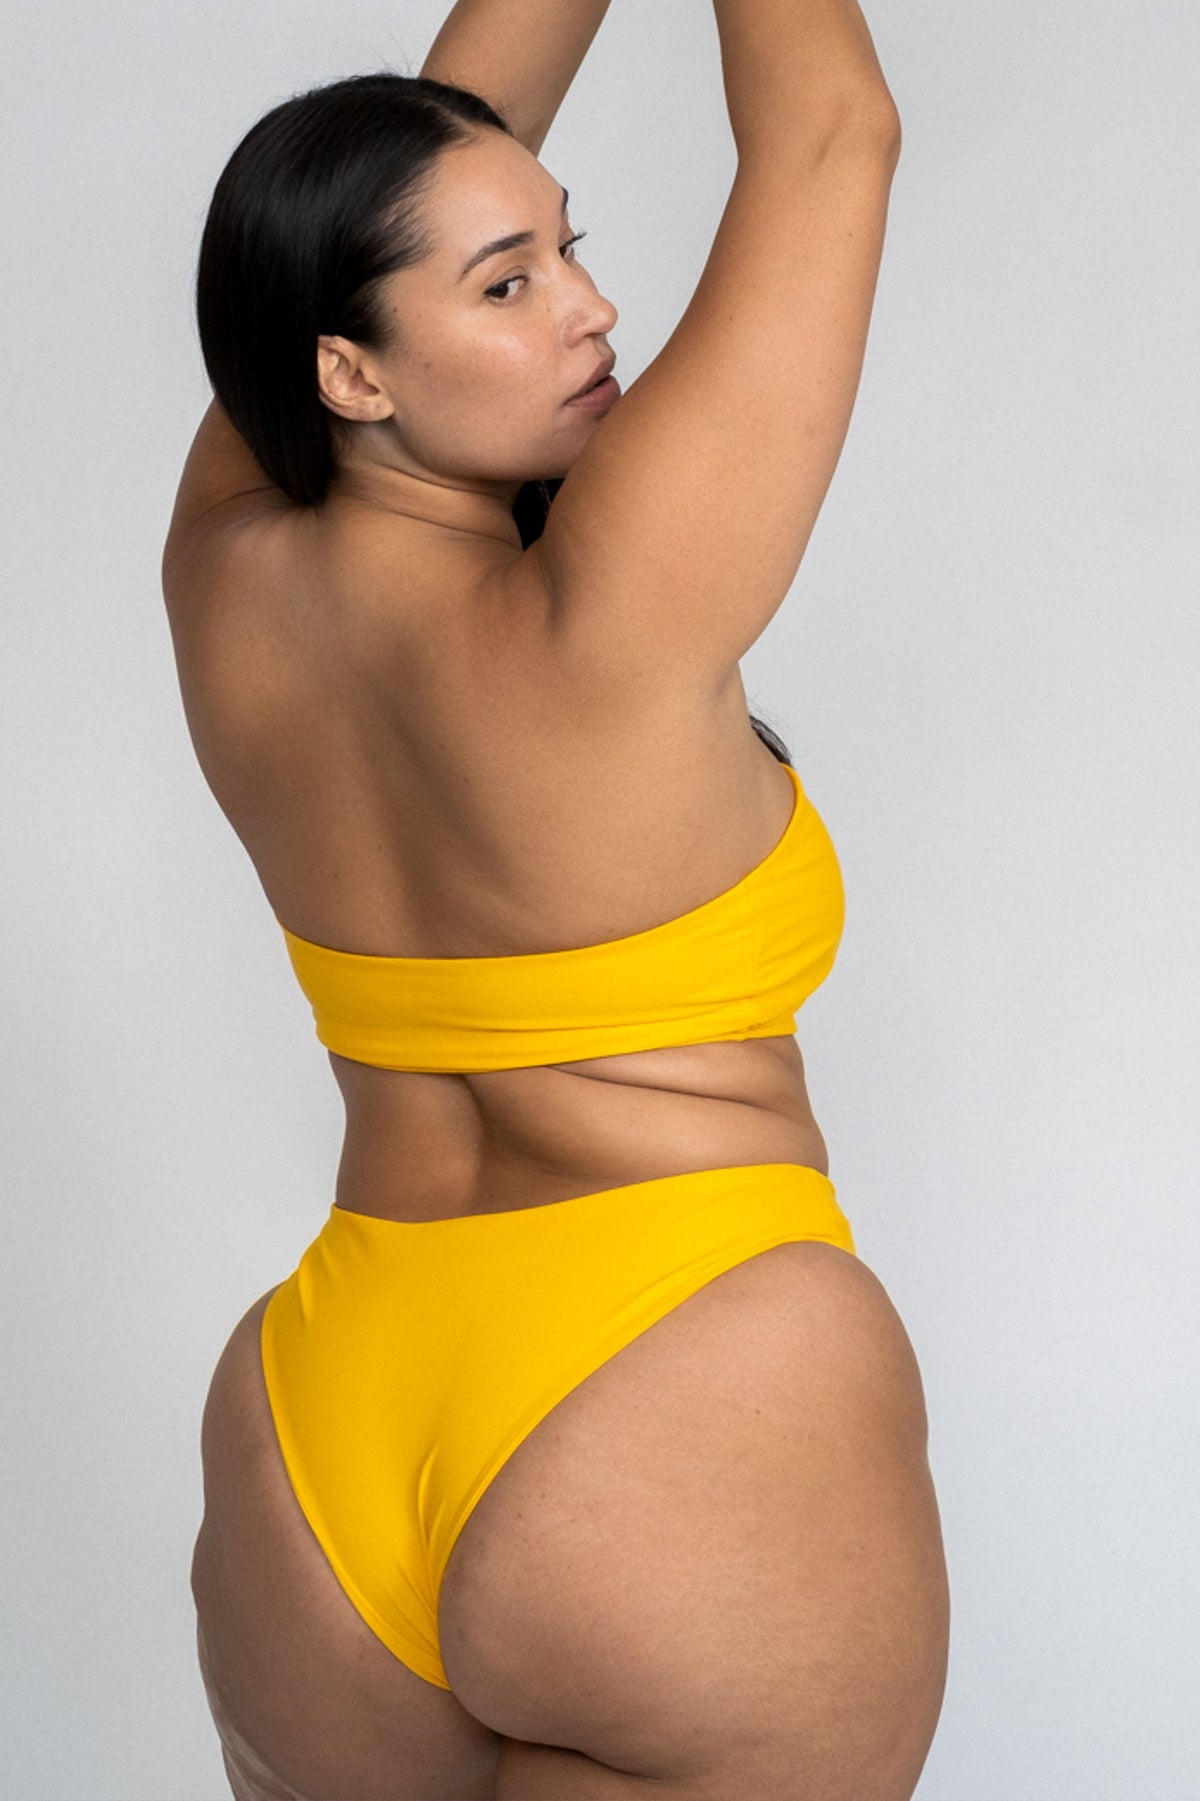 The back of a woman standing looking over her shoulder wearing yellow high cut bikini bottoms with a matching yellow strapless bandeau bikini top.